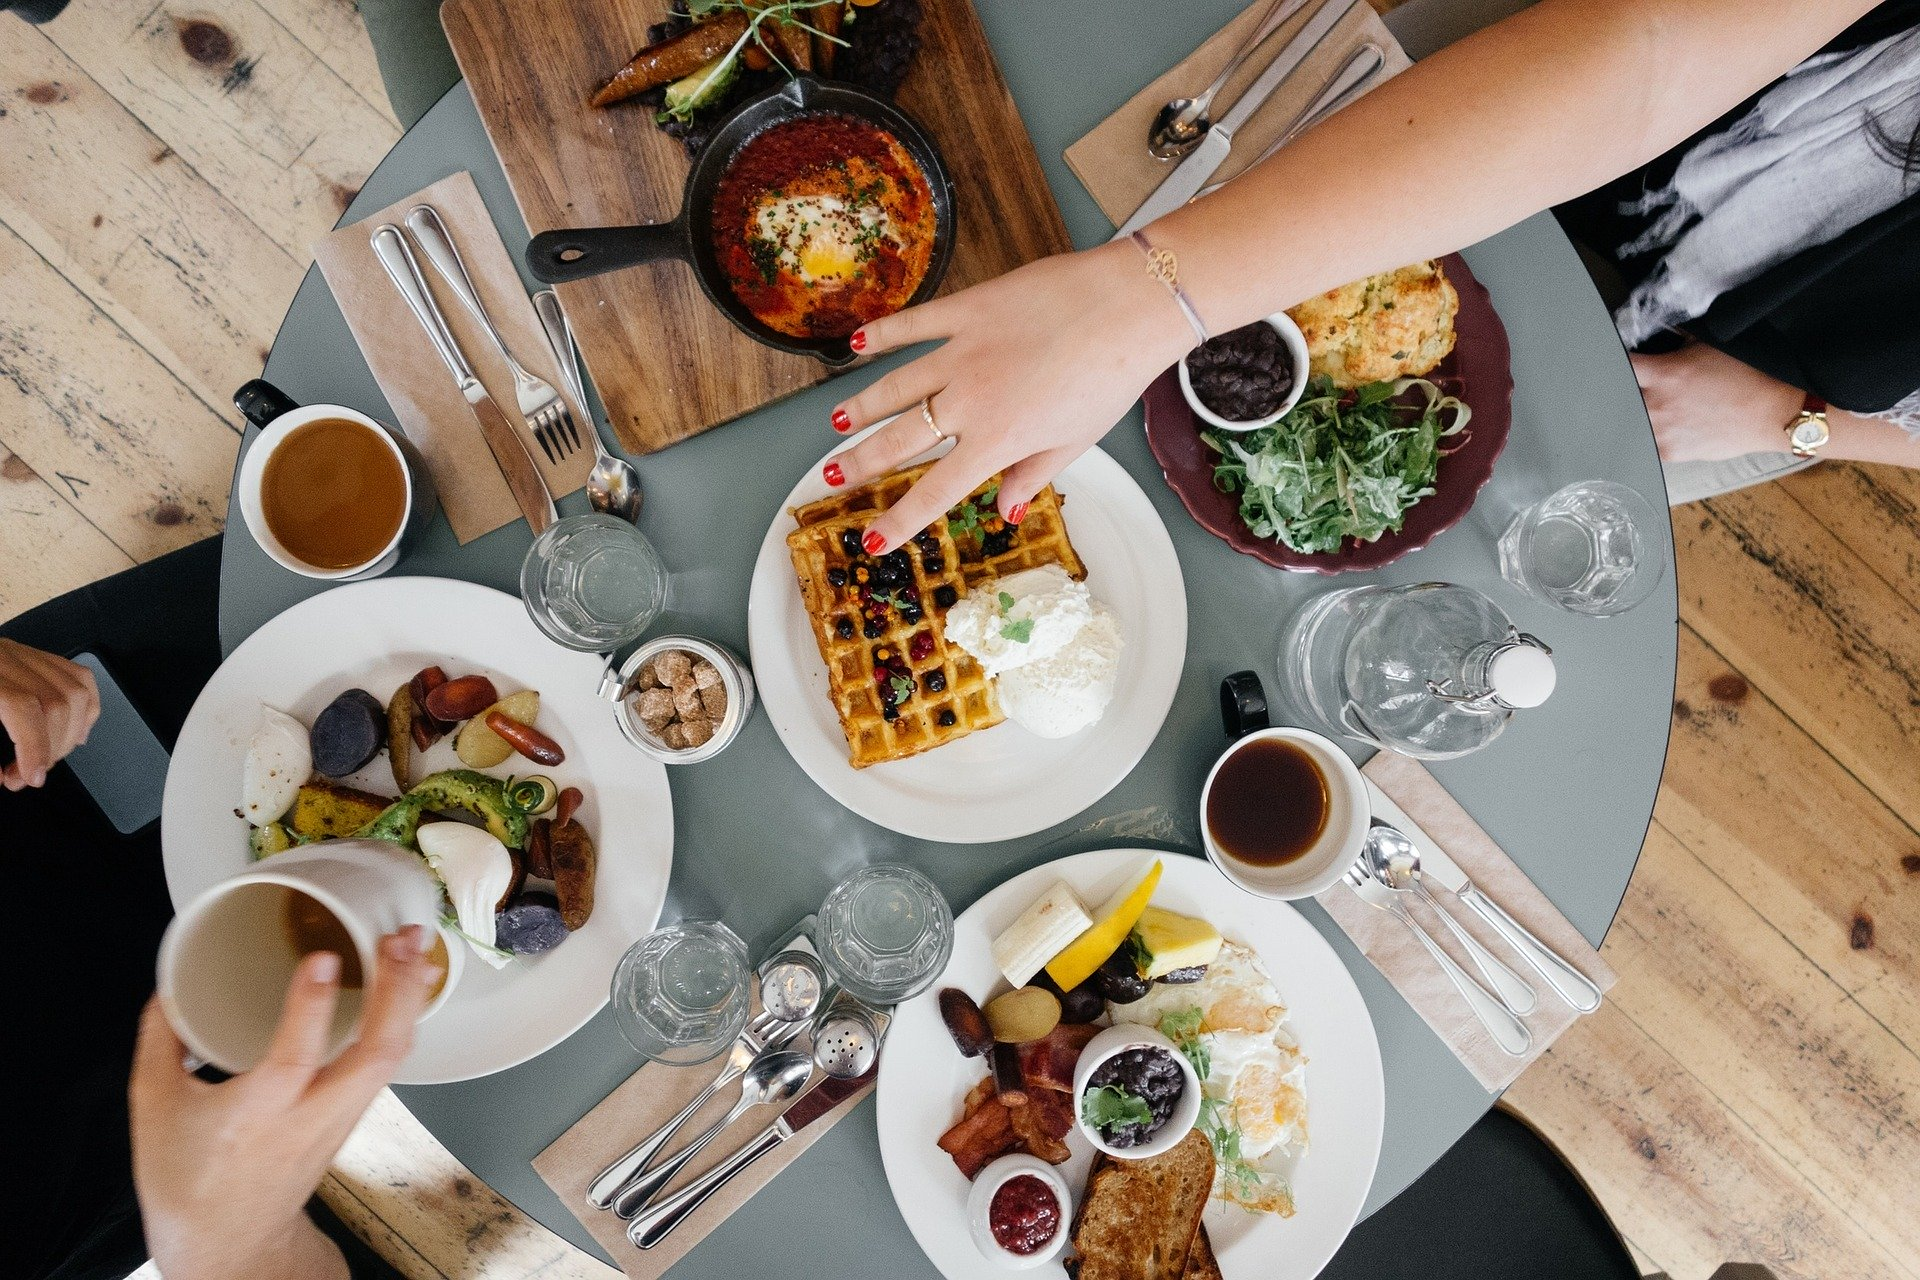 table full of breakfast items like waffles, coffee, omelets and sausage with two hands reaching across plates